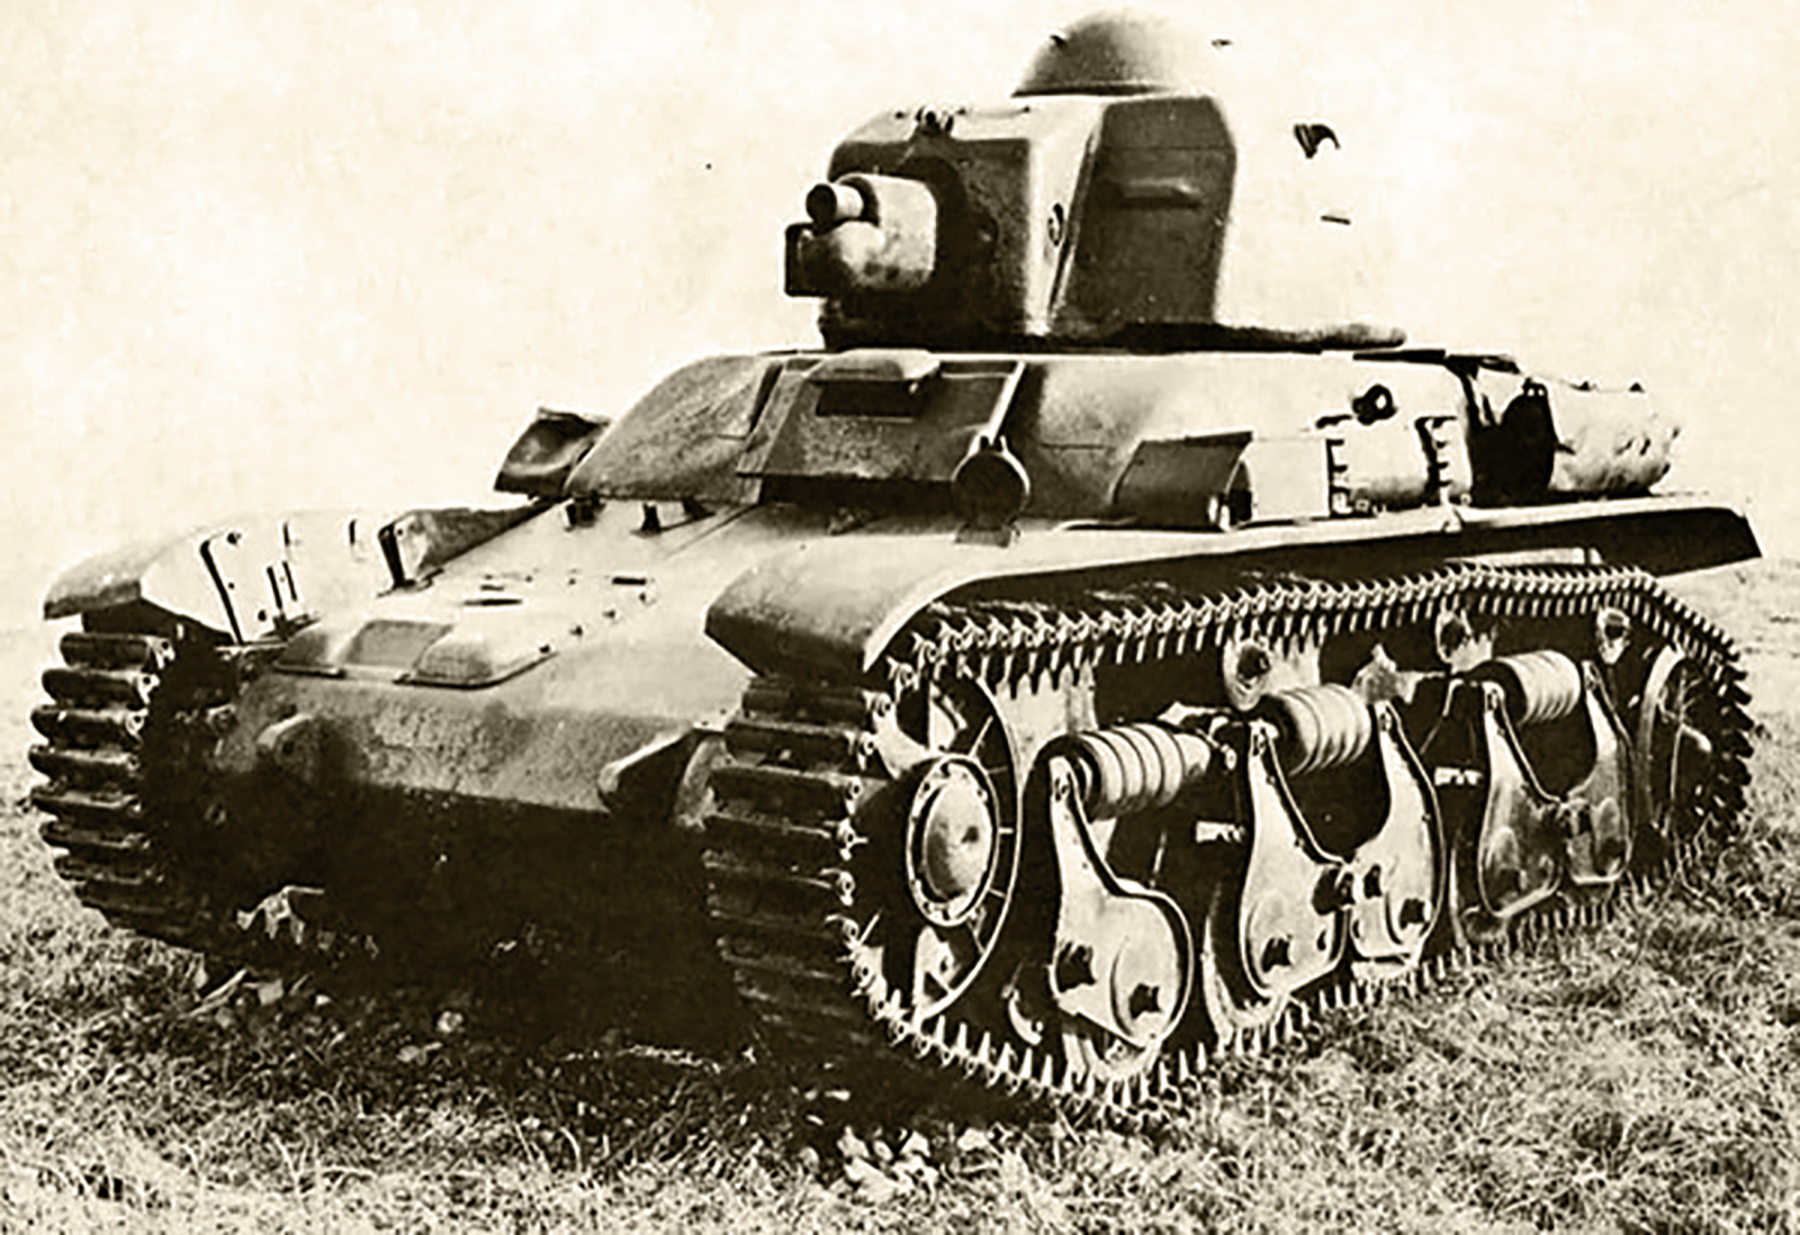 French Army Renault R35 support tank battle of France 1940 web 01